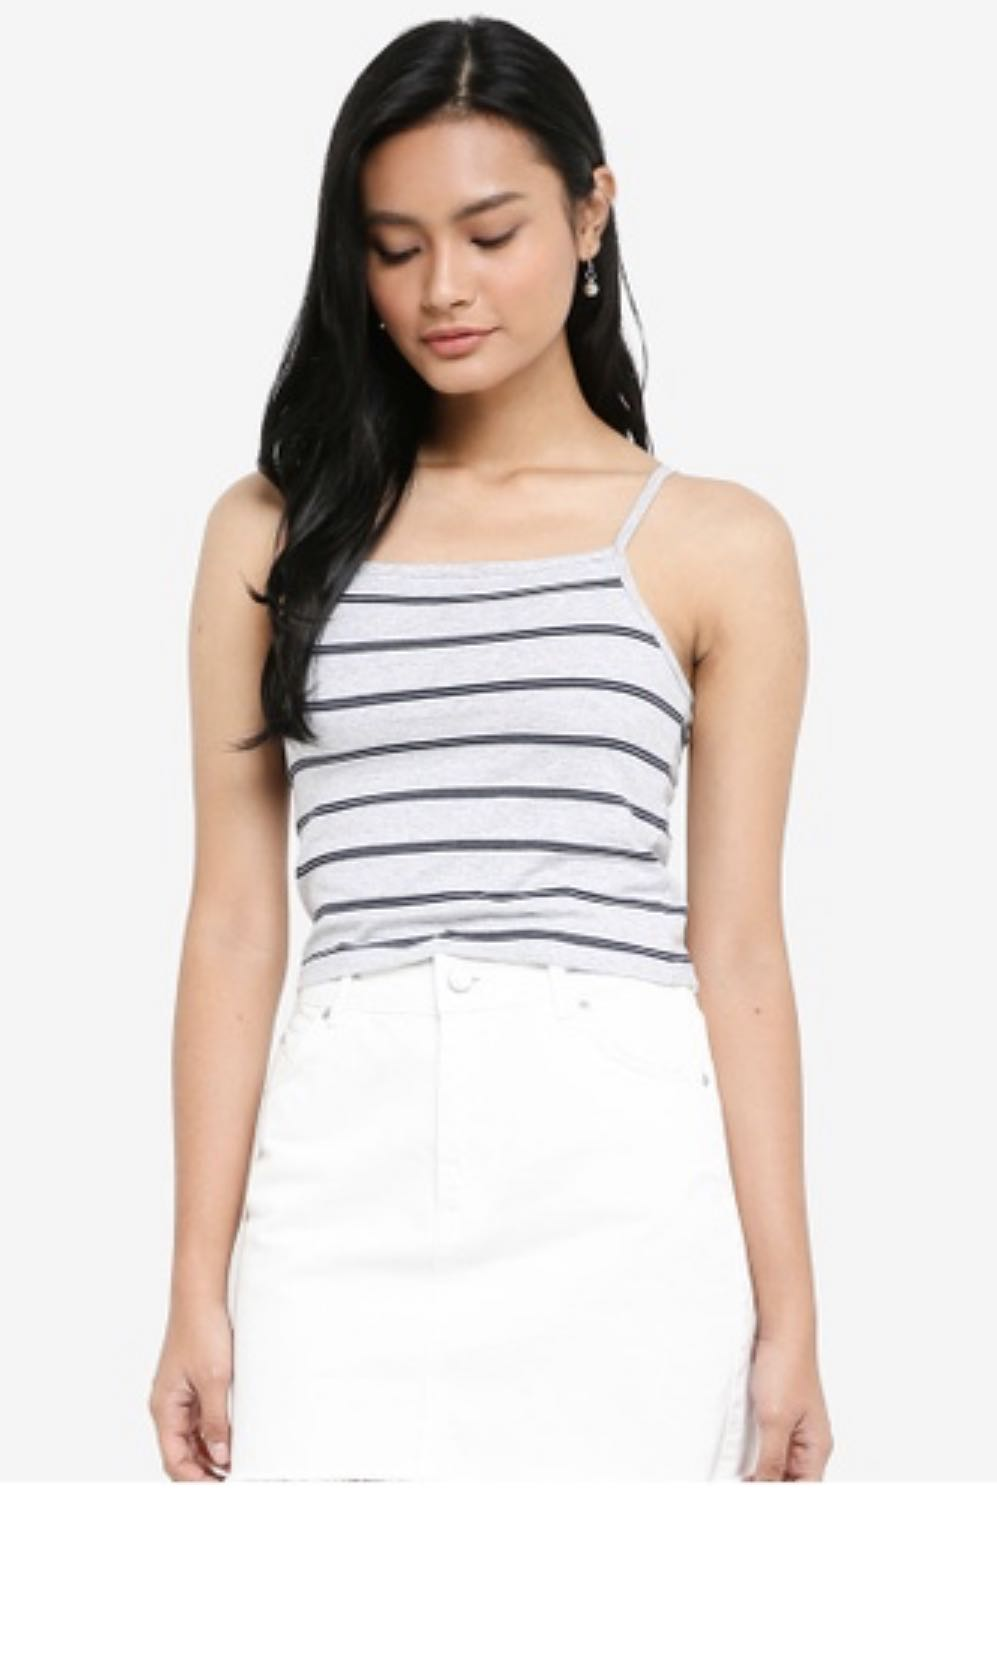 d6ee70336536d BNWT COTTON ON GREY STRIPED CROP TOP